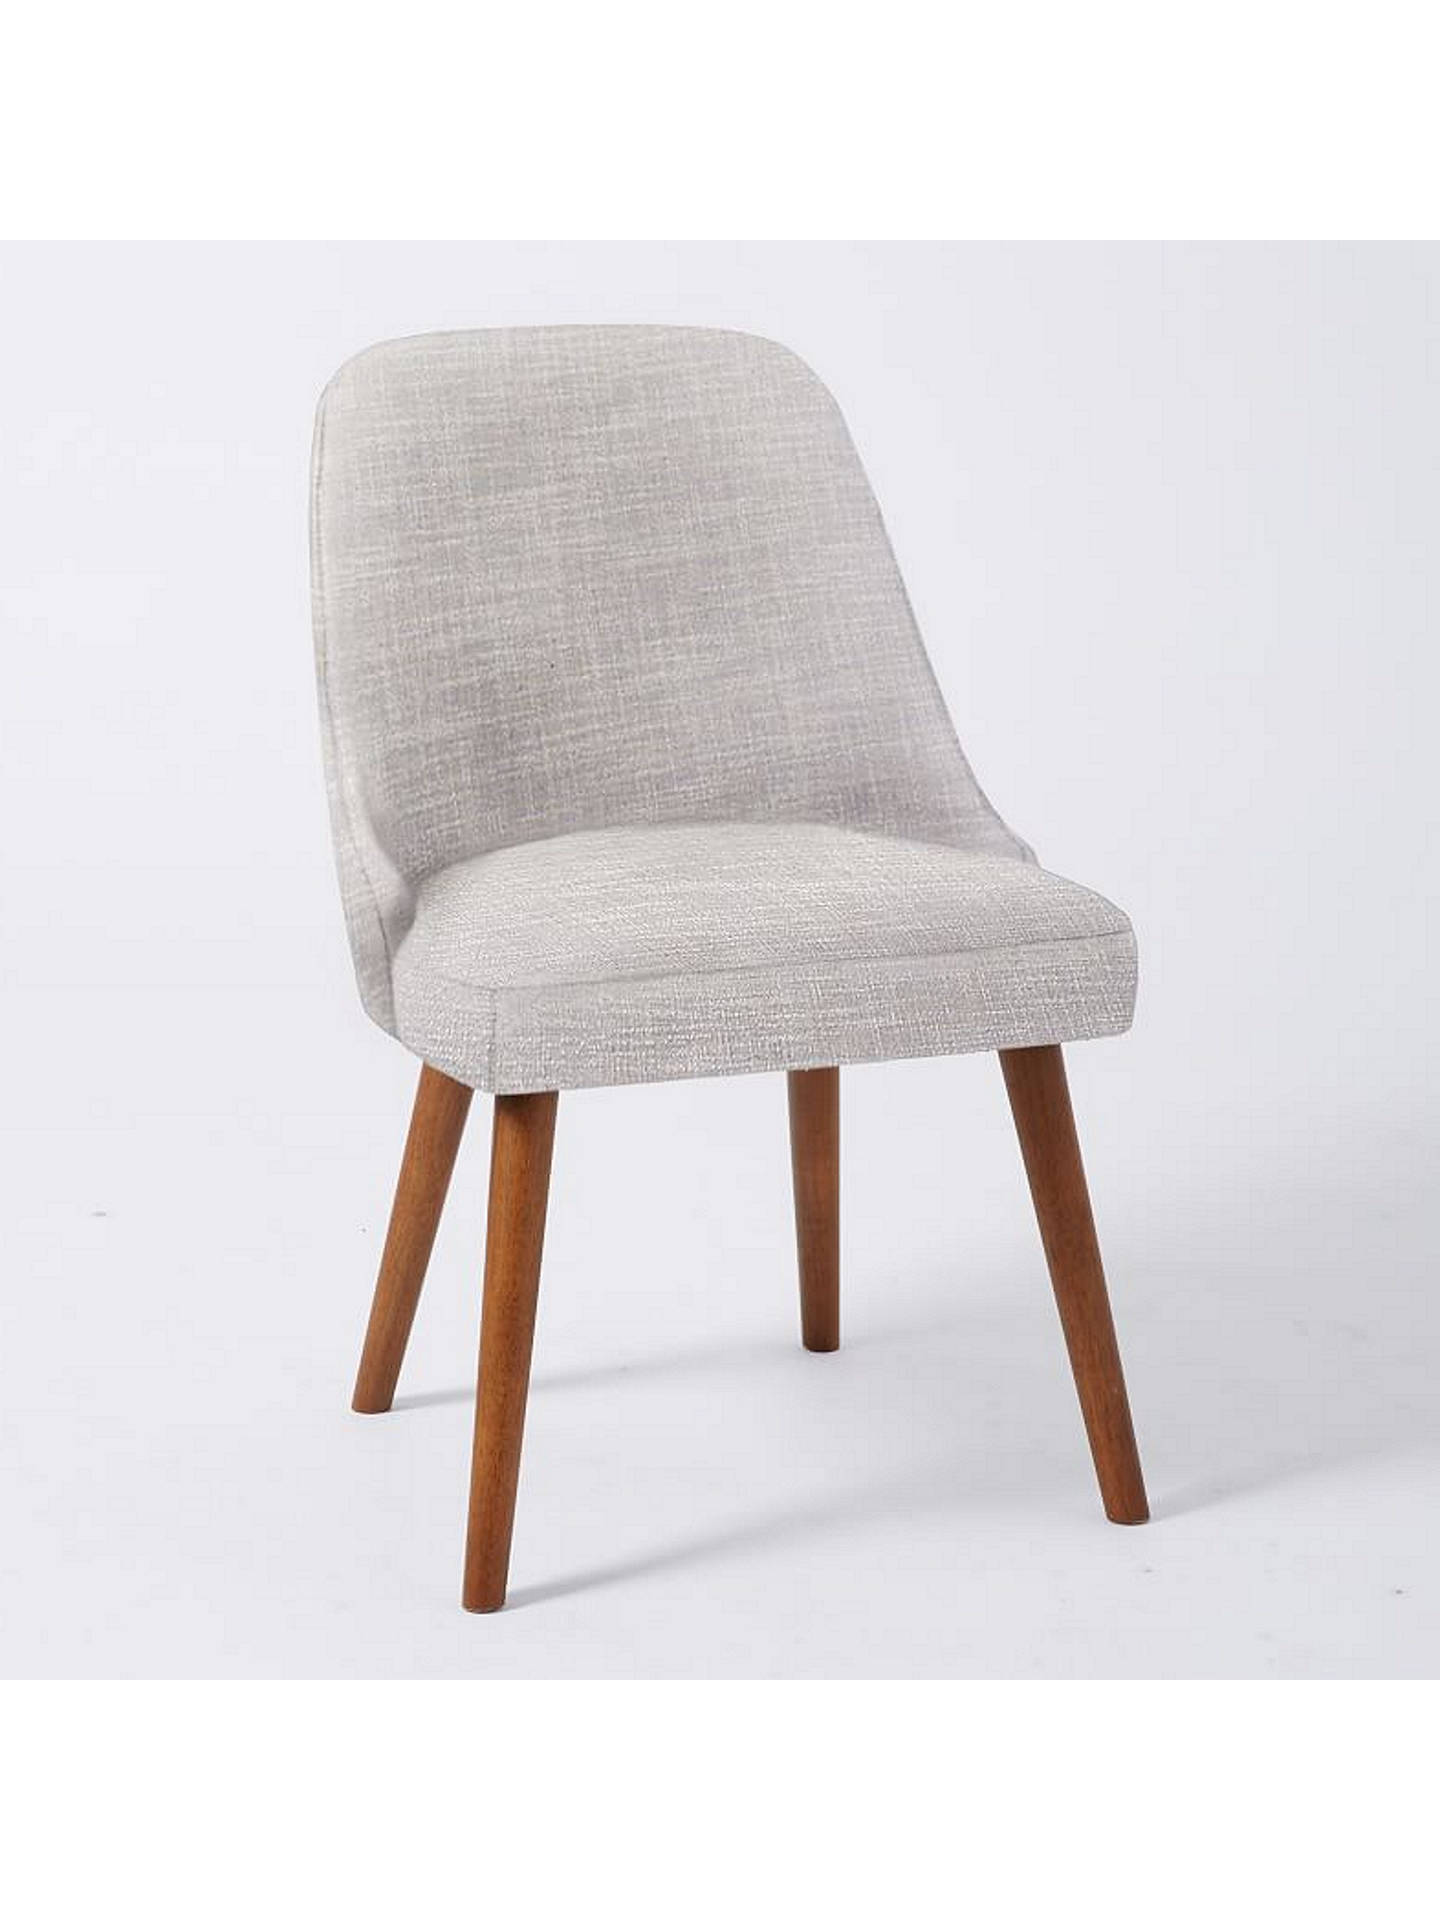 stunning west elm office chair | west elm Mid-Century Office Chair at John Lewis & Partners